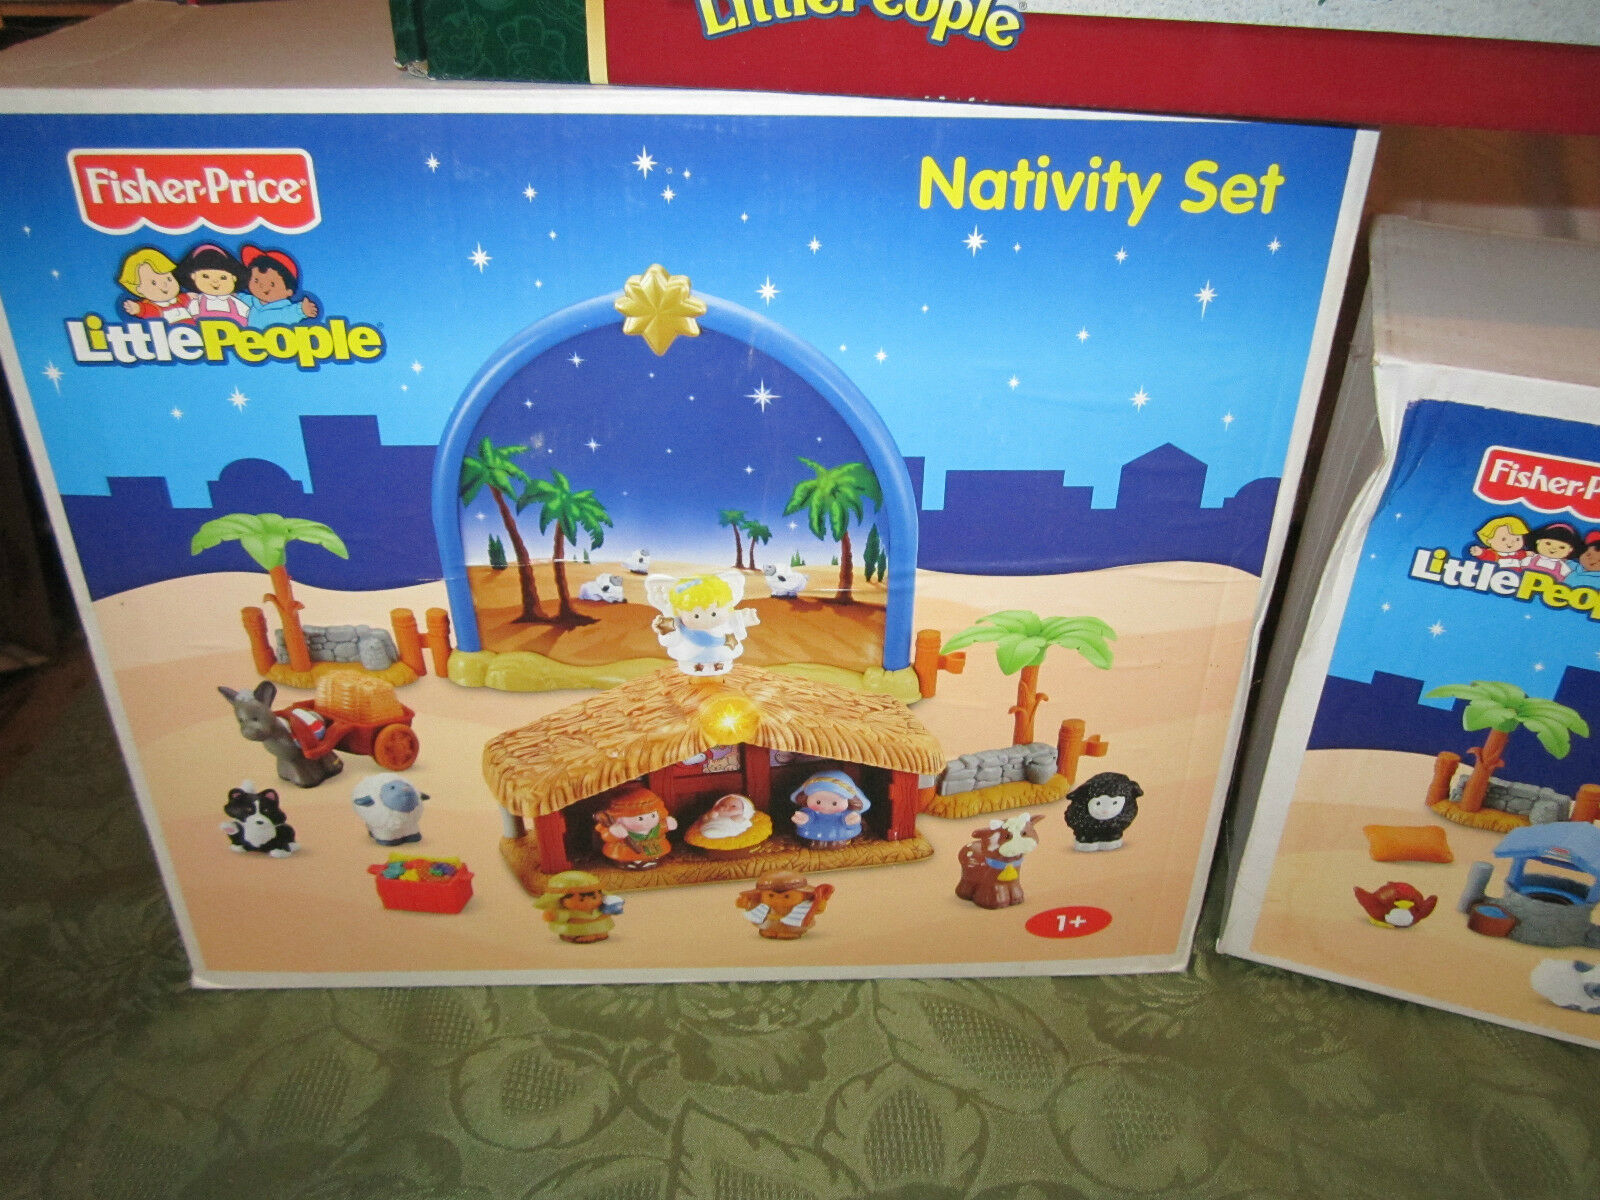 Fisher Price Little People Xmas Xmas Xmas Drummer Boy Nativity Manger Inn Wise Shepherds 93d2fb